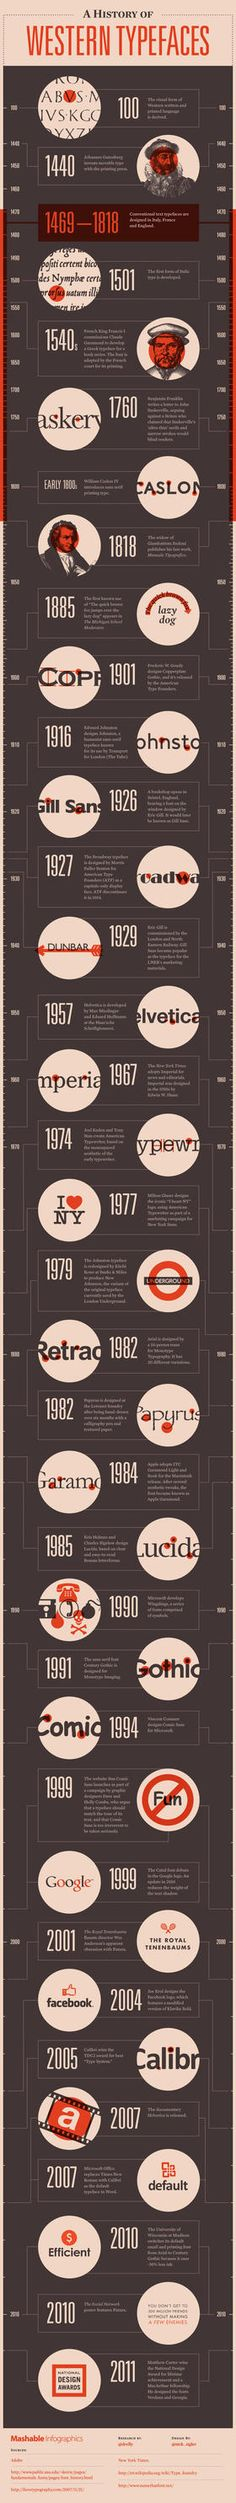 A brief History of Western Typefaces